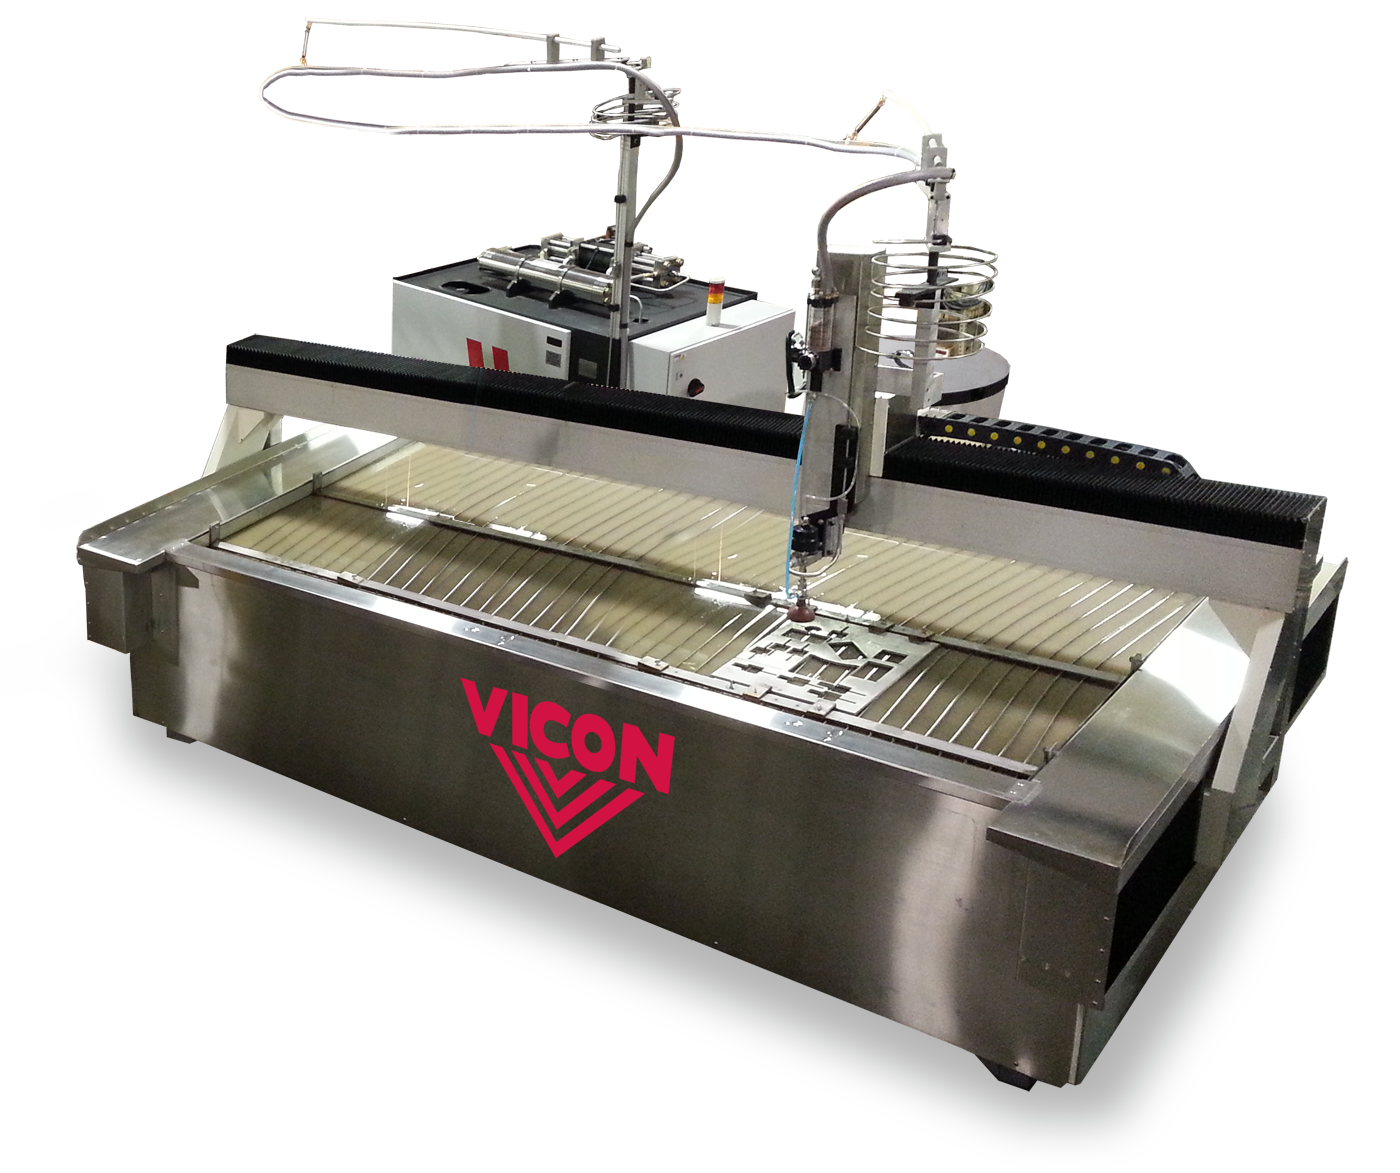 Vicon Abrasive Waterjet Cutting Table